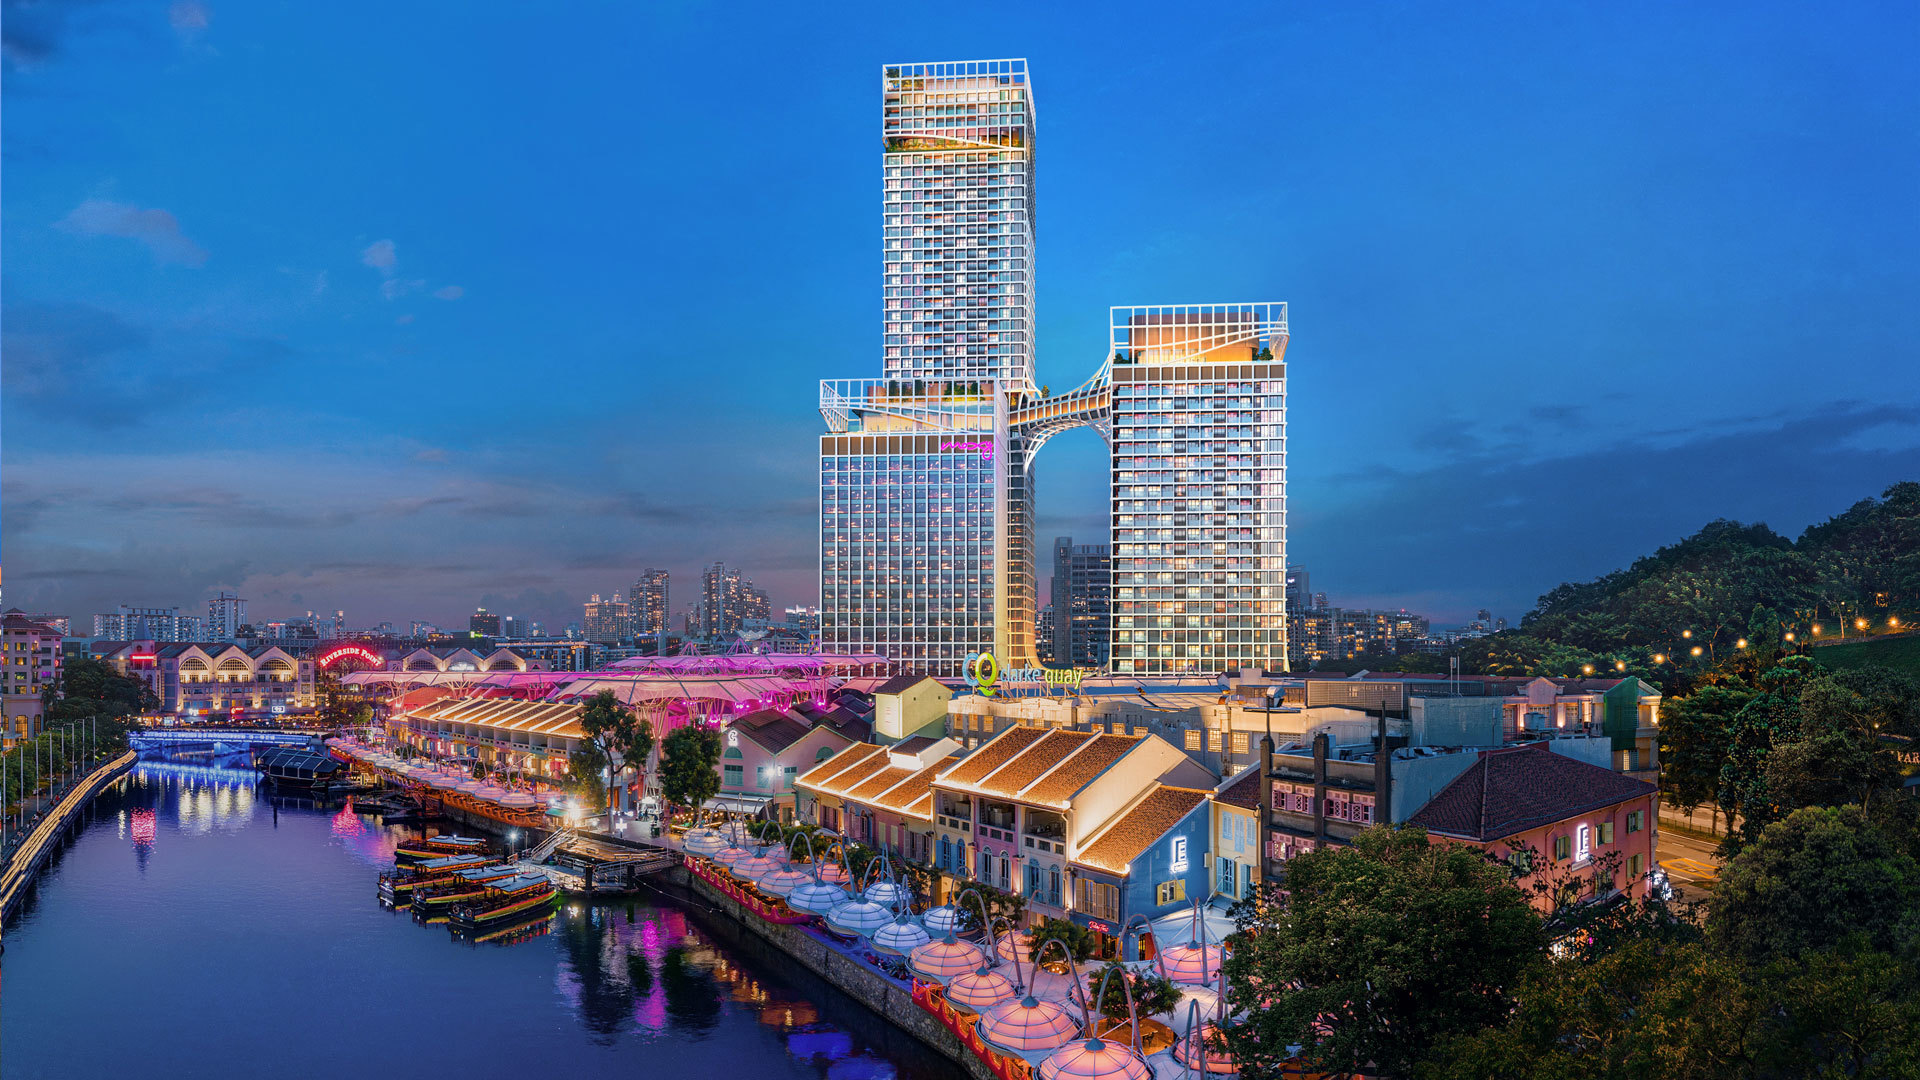 Artist's Impression . New Canninghill Piers and Canninghill Square at Clarke Quay